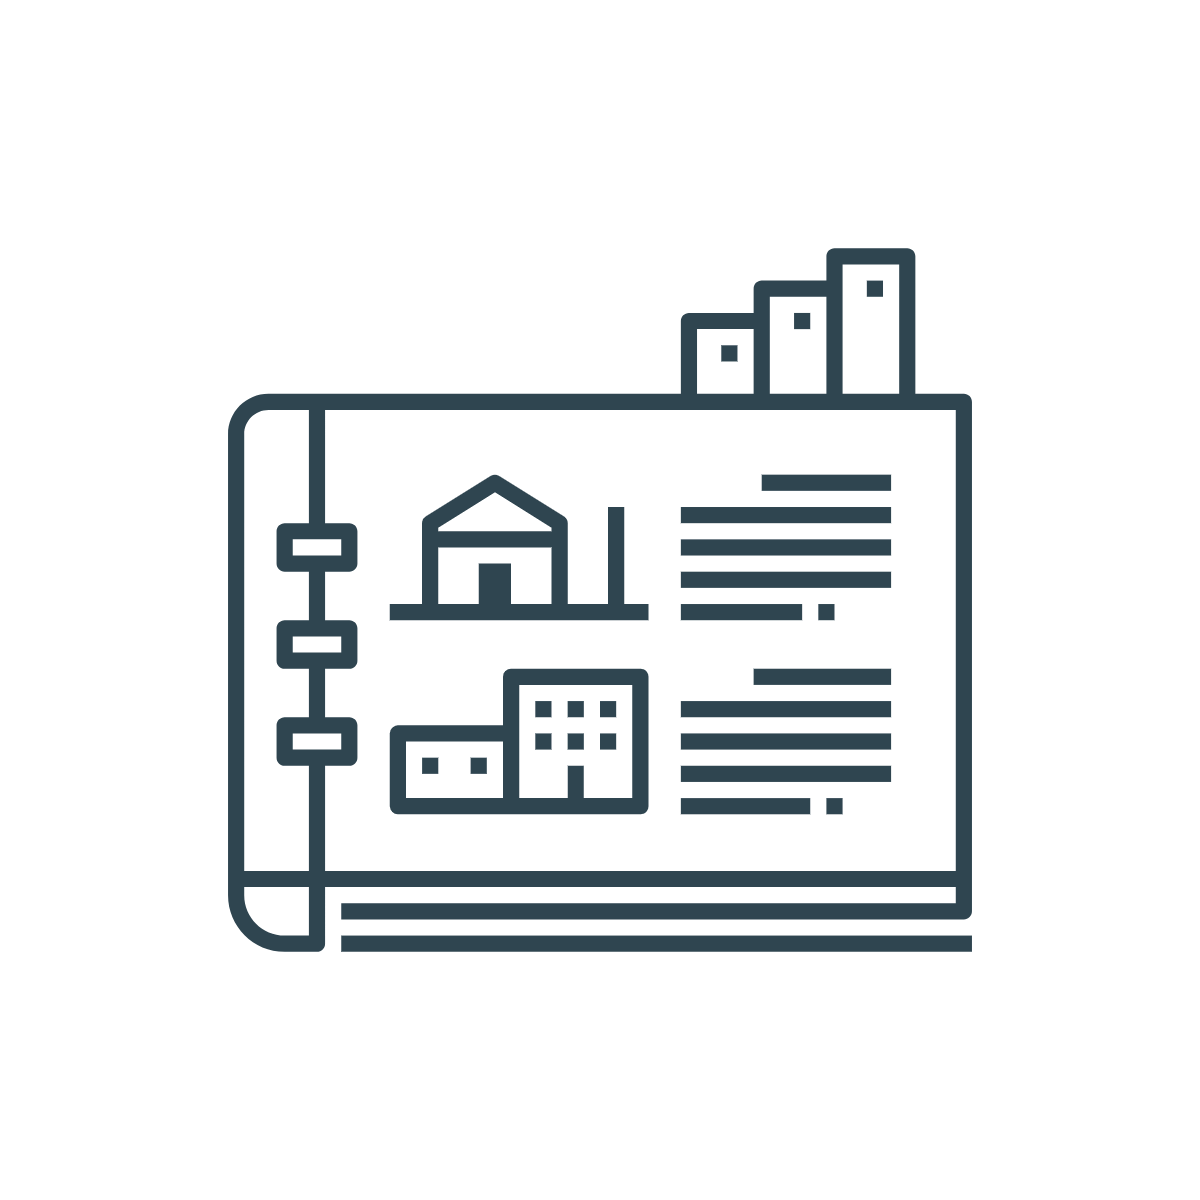 icon of a property catalog